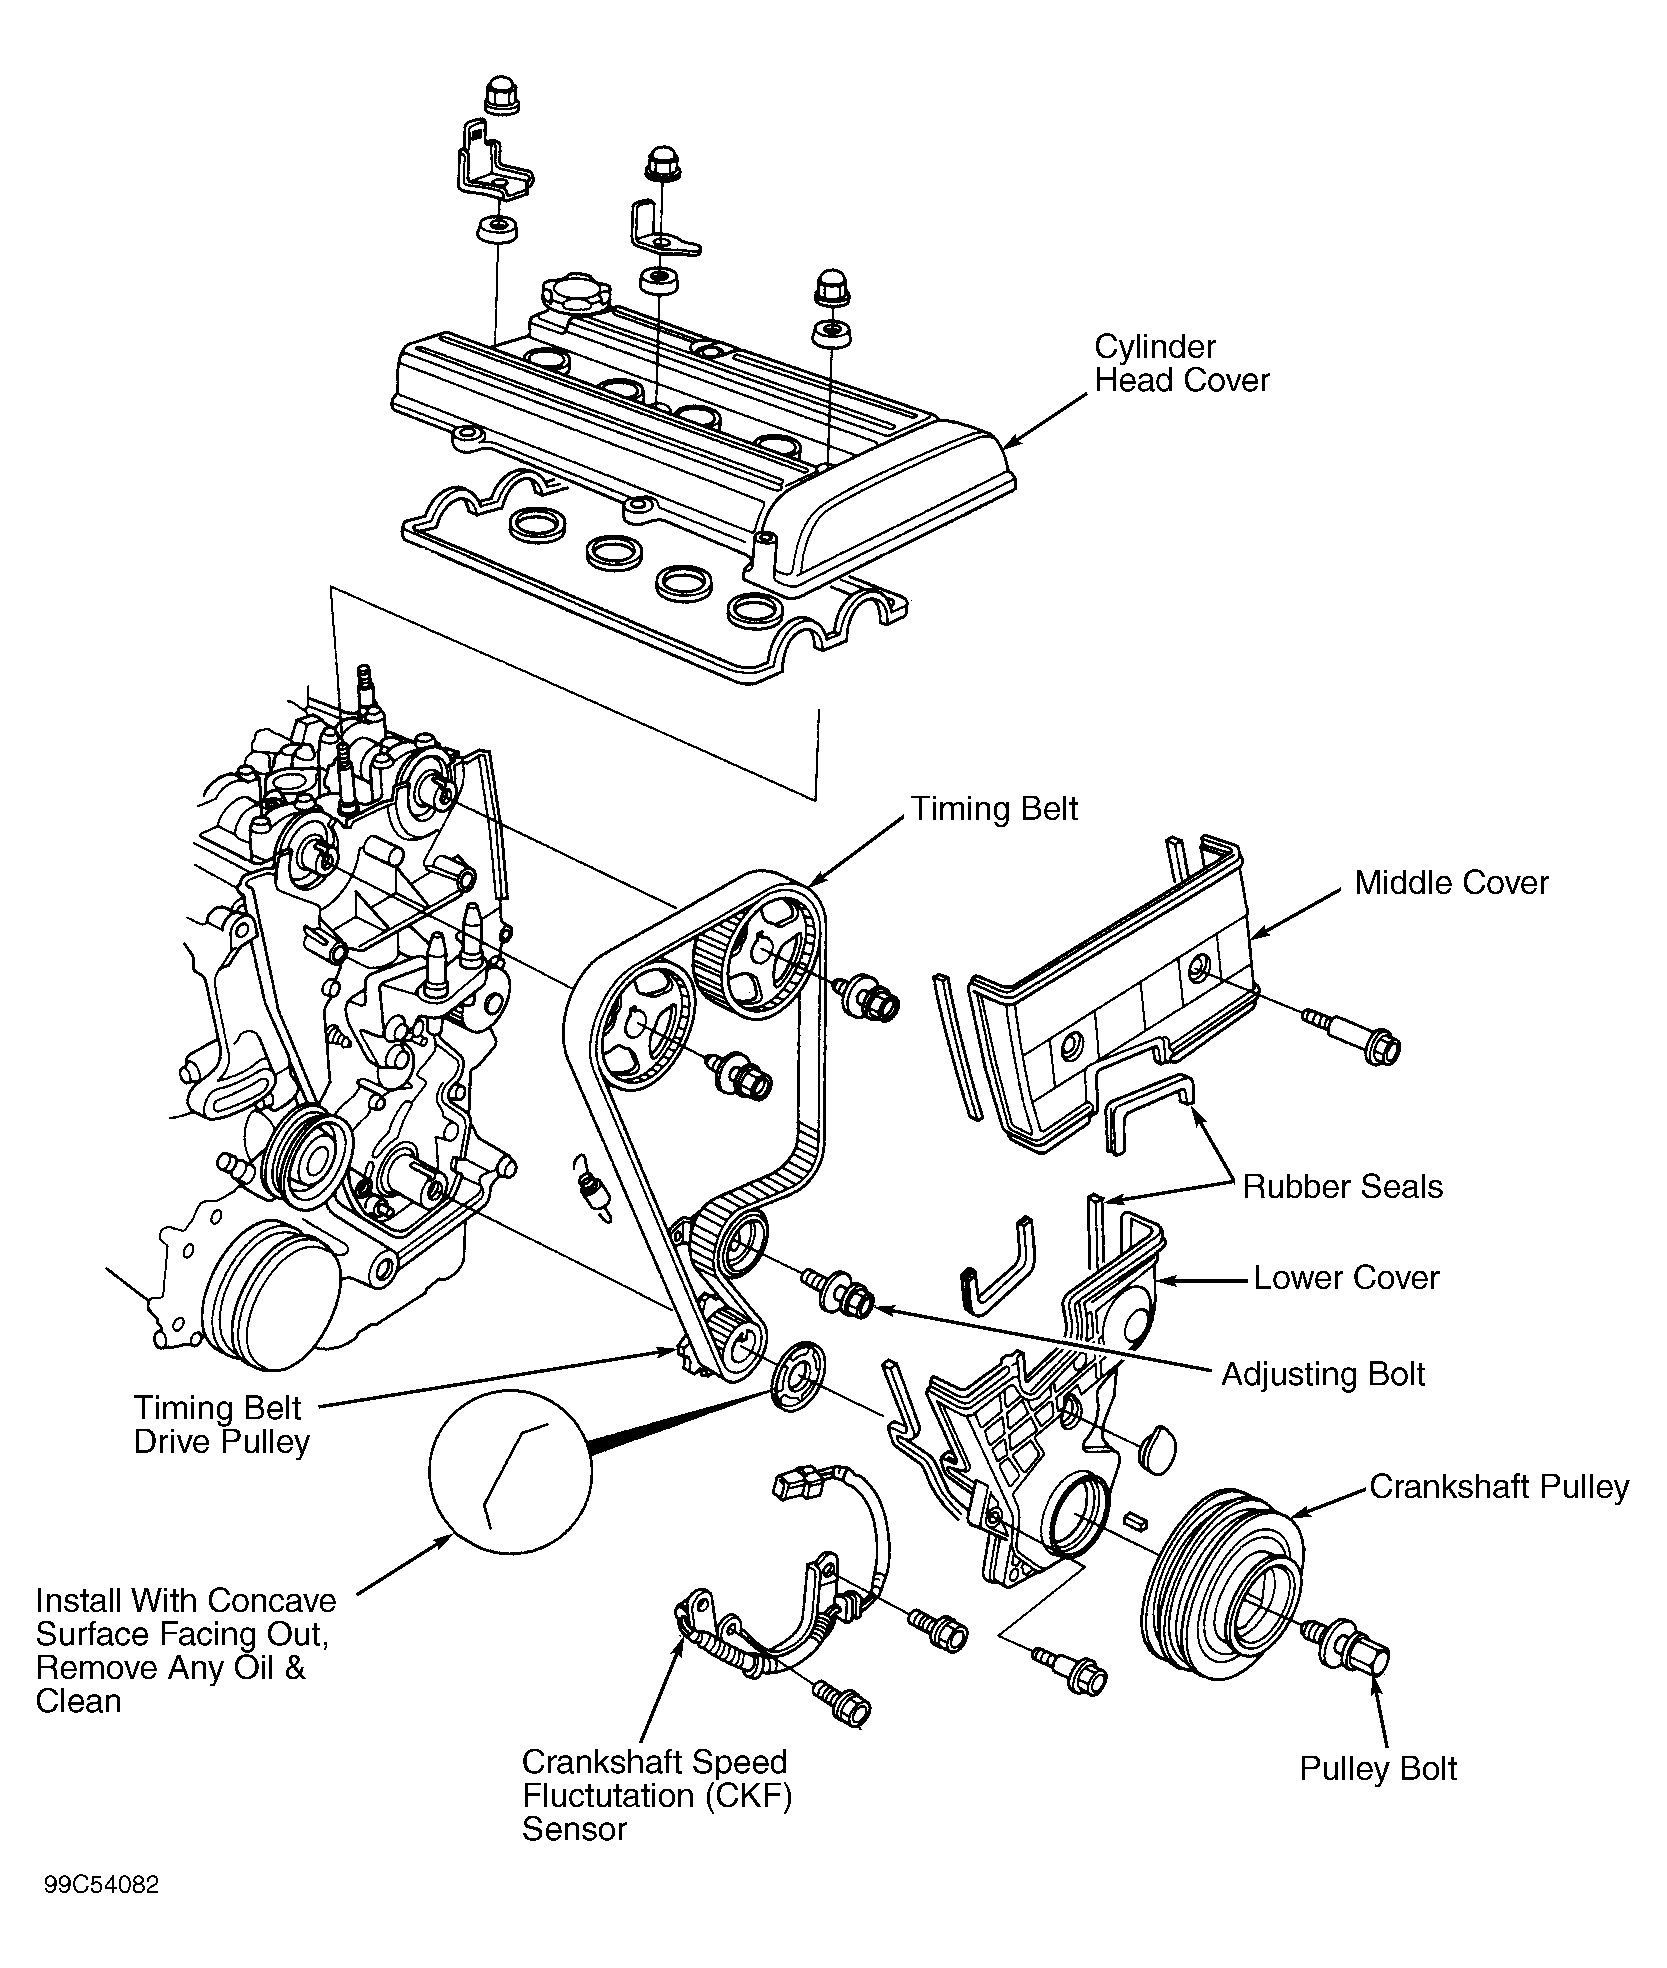 Honda Crv Engine Diagram Wiring Diagram Ford